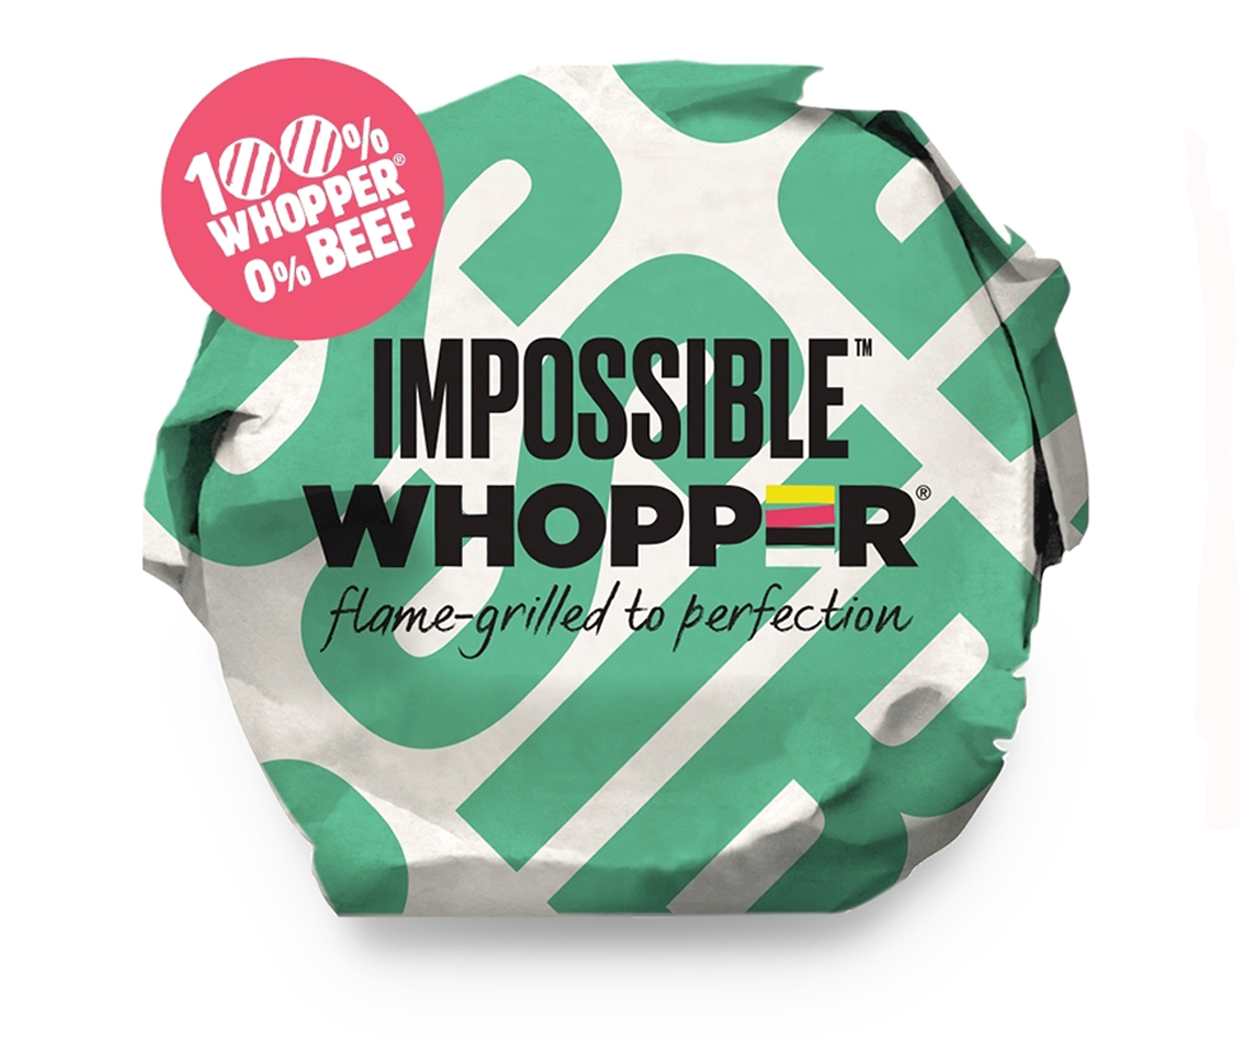 汉堡王 Impossible Whopper